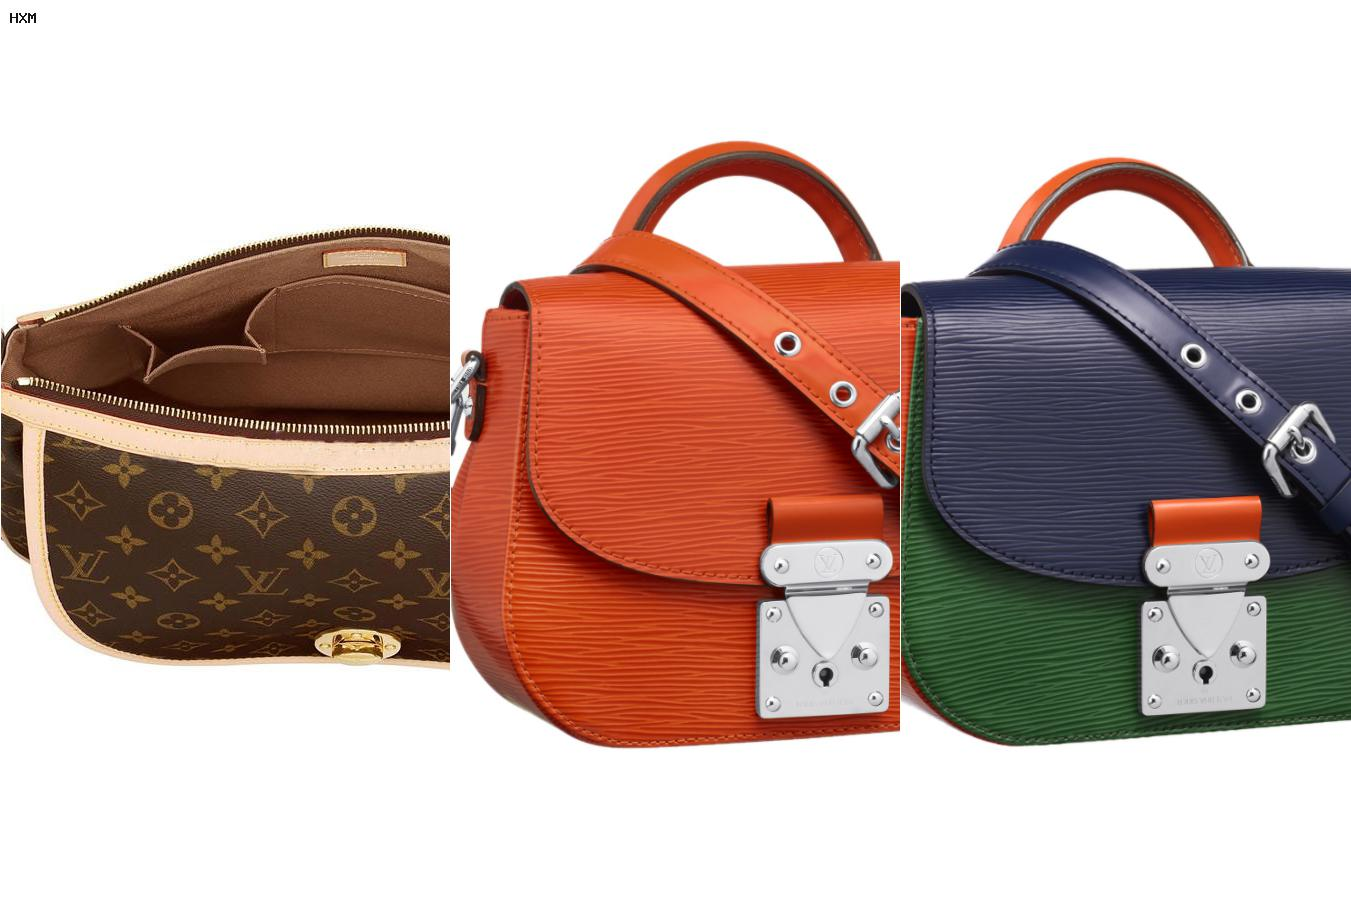 louis vuitton handbags made in france